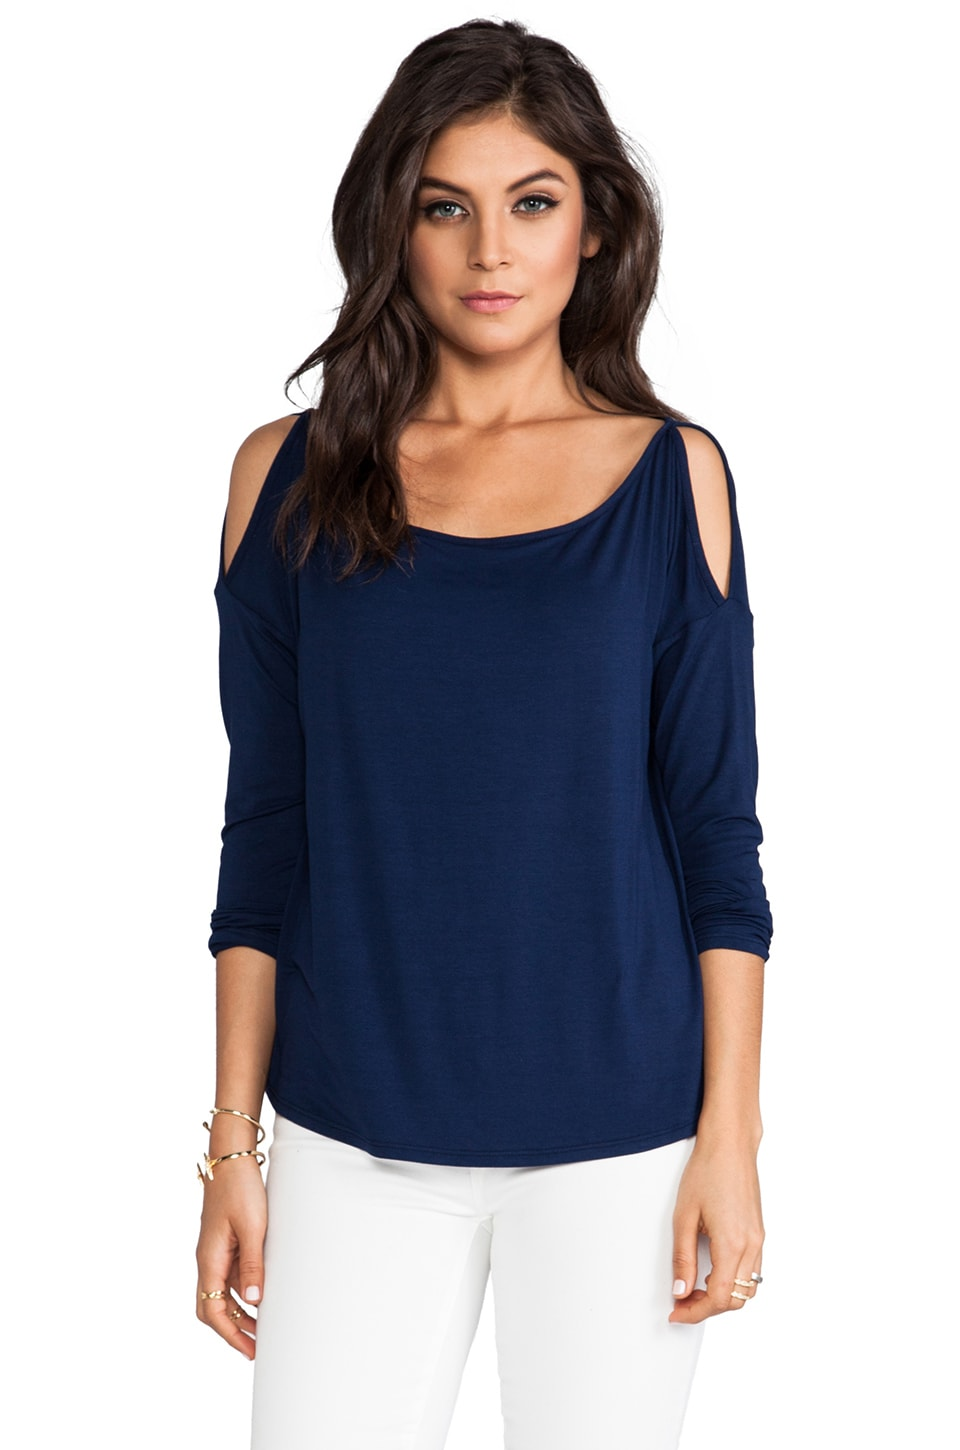 James & Joy Erin Skinny Sleeve Top in Navy